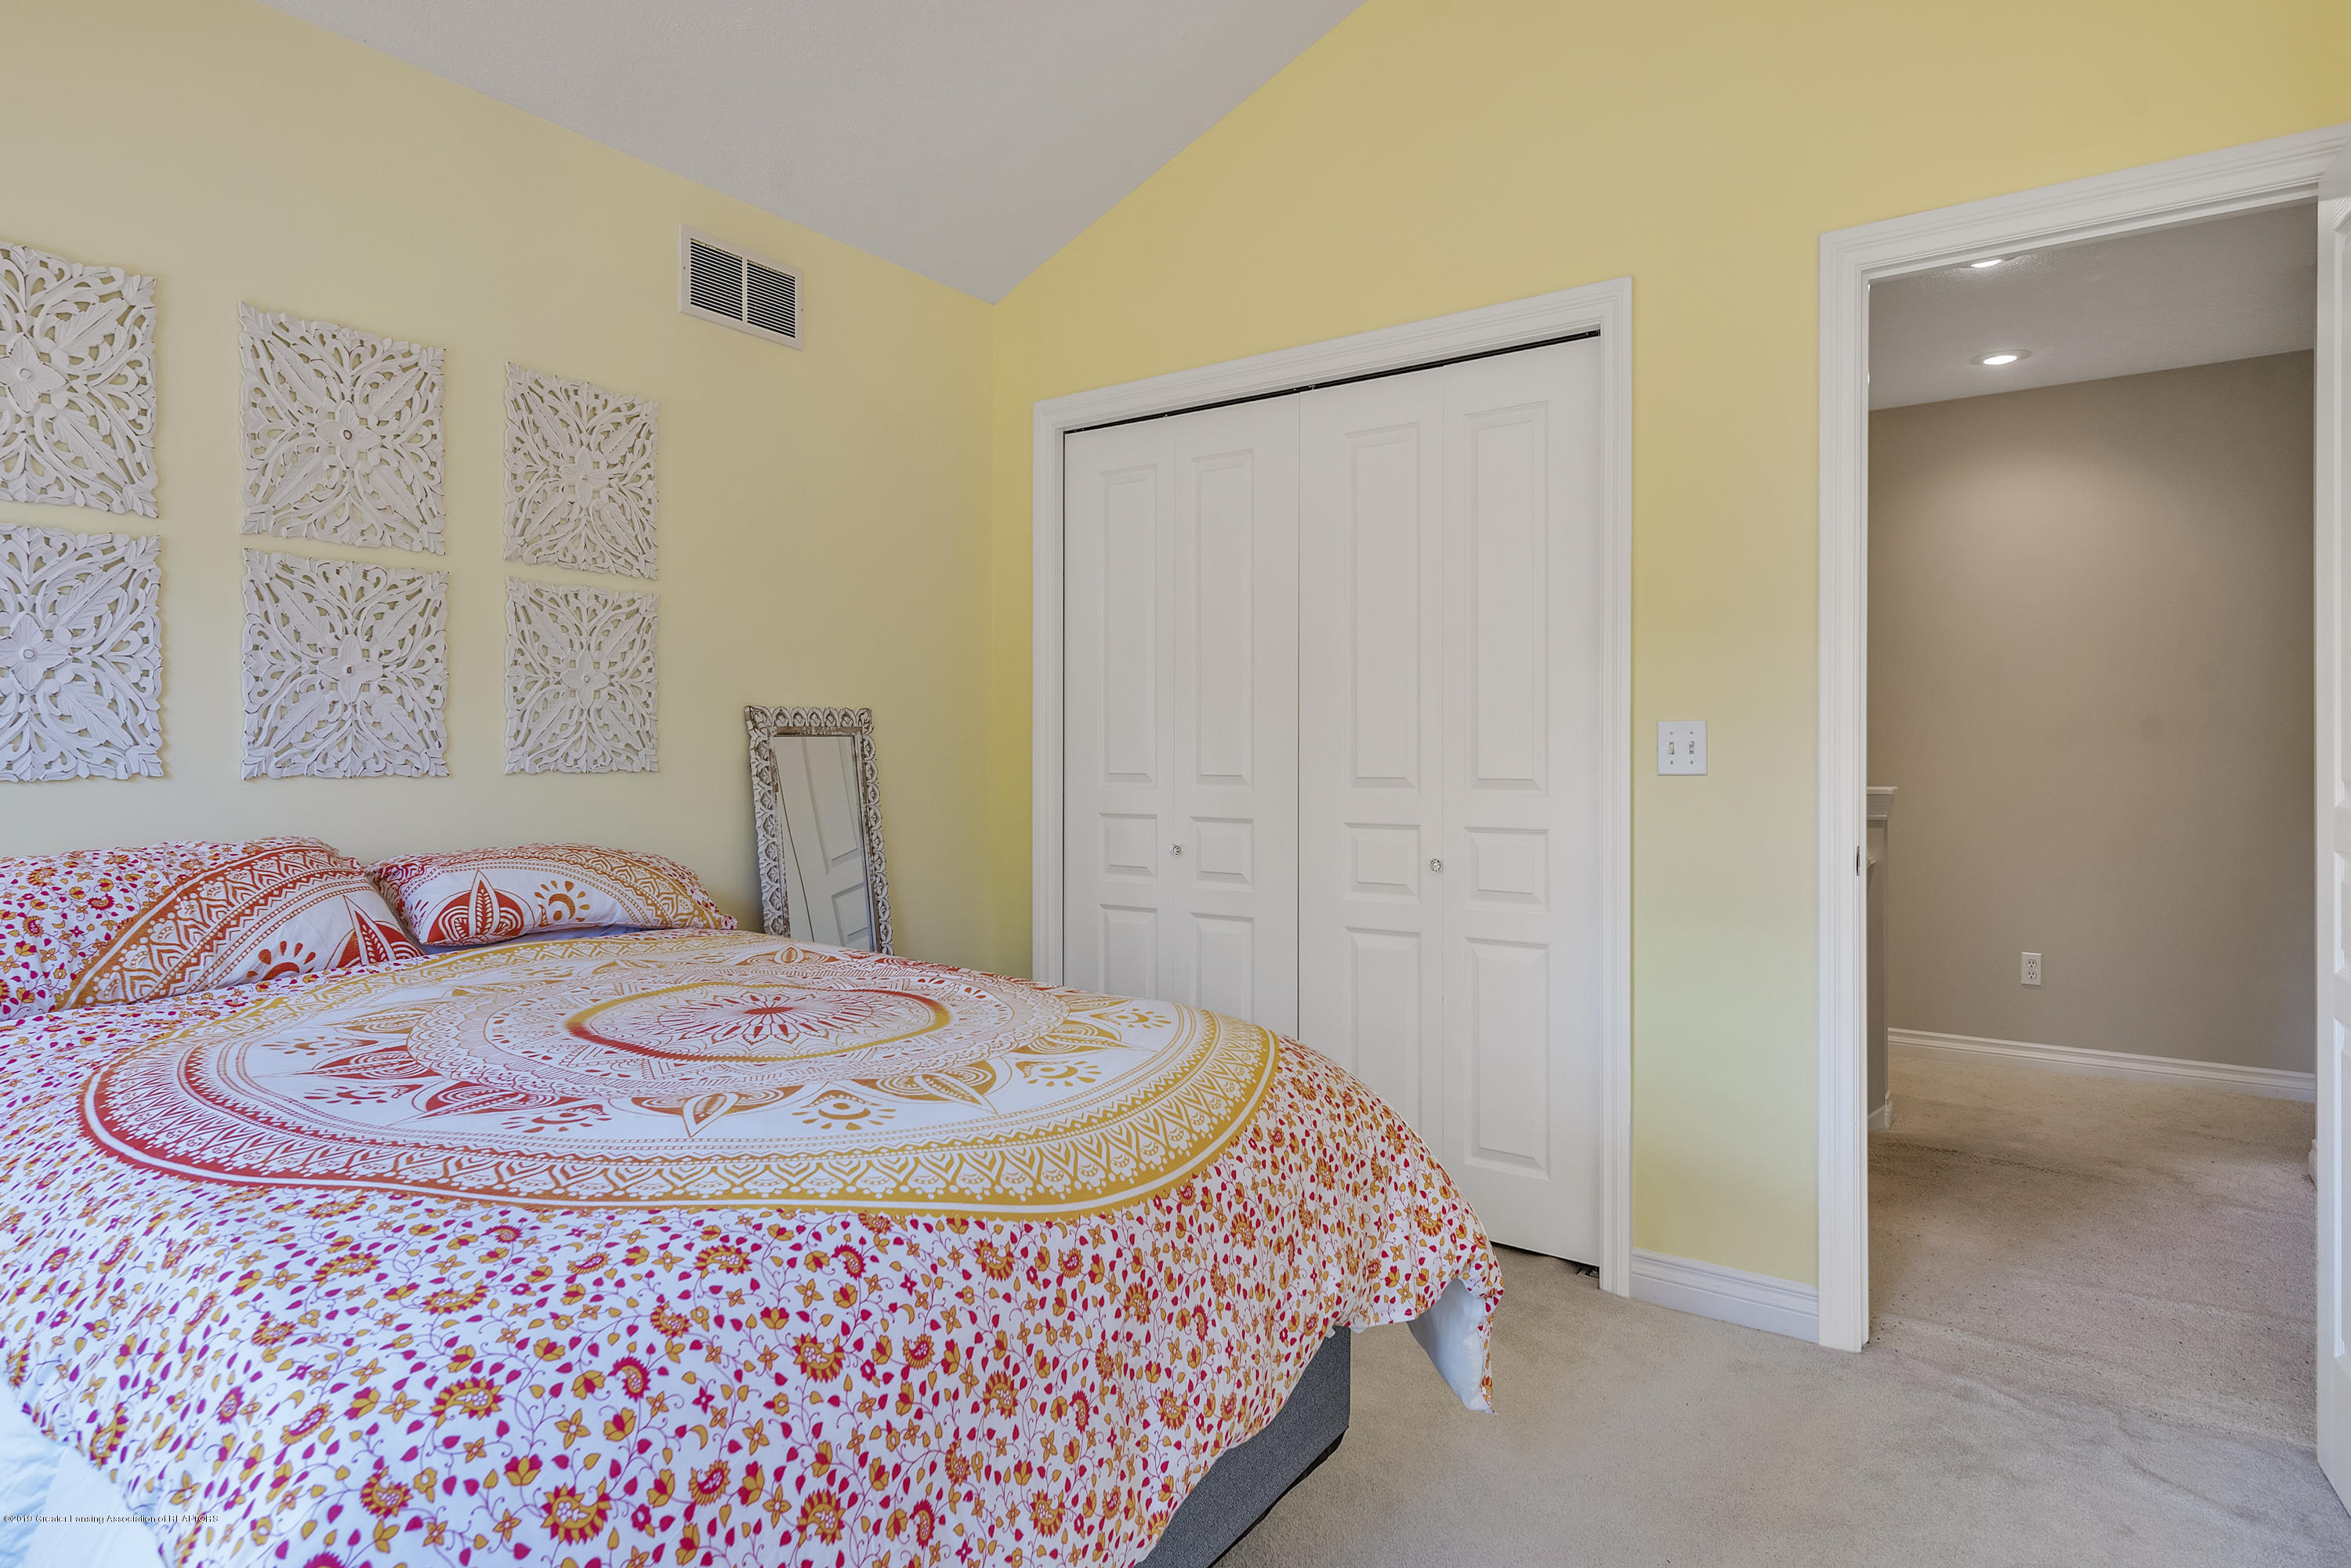 1058 Buckingham Rd - Bedroom 2 - 34